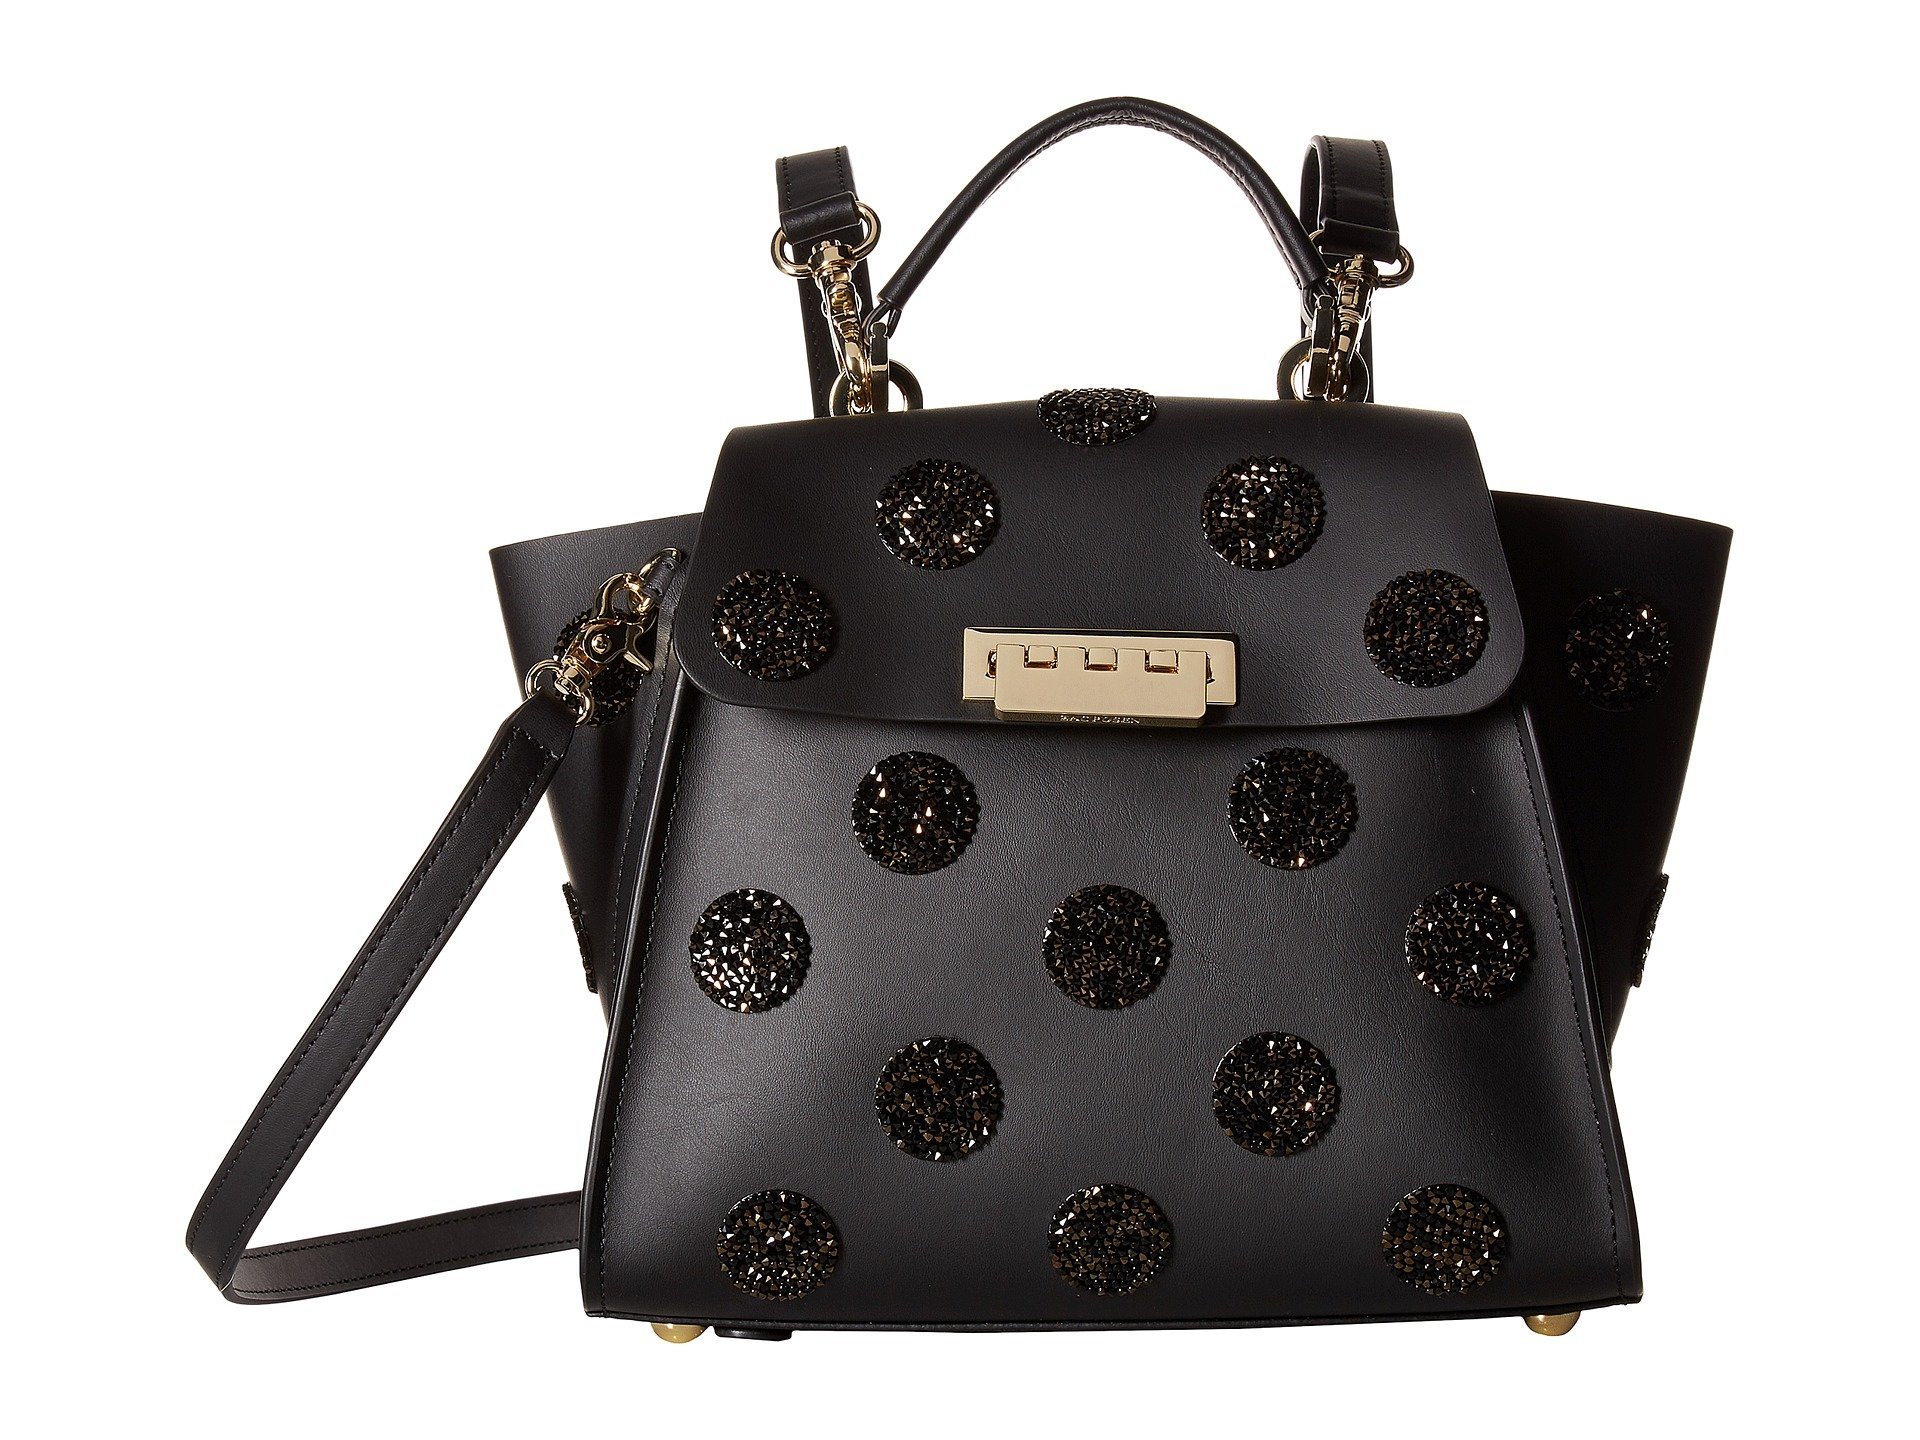 Mochila para Mujer ZAC Zac Posen Eartha Iconic Convertible Backpack - Black with Swarovski® Crystals  + ZAC Zac Posen en VeoyCompro.net